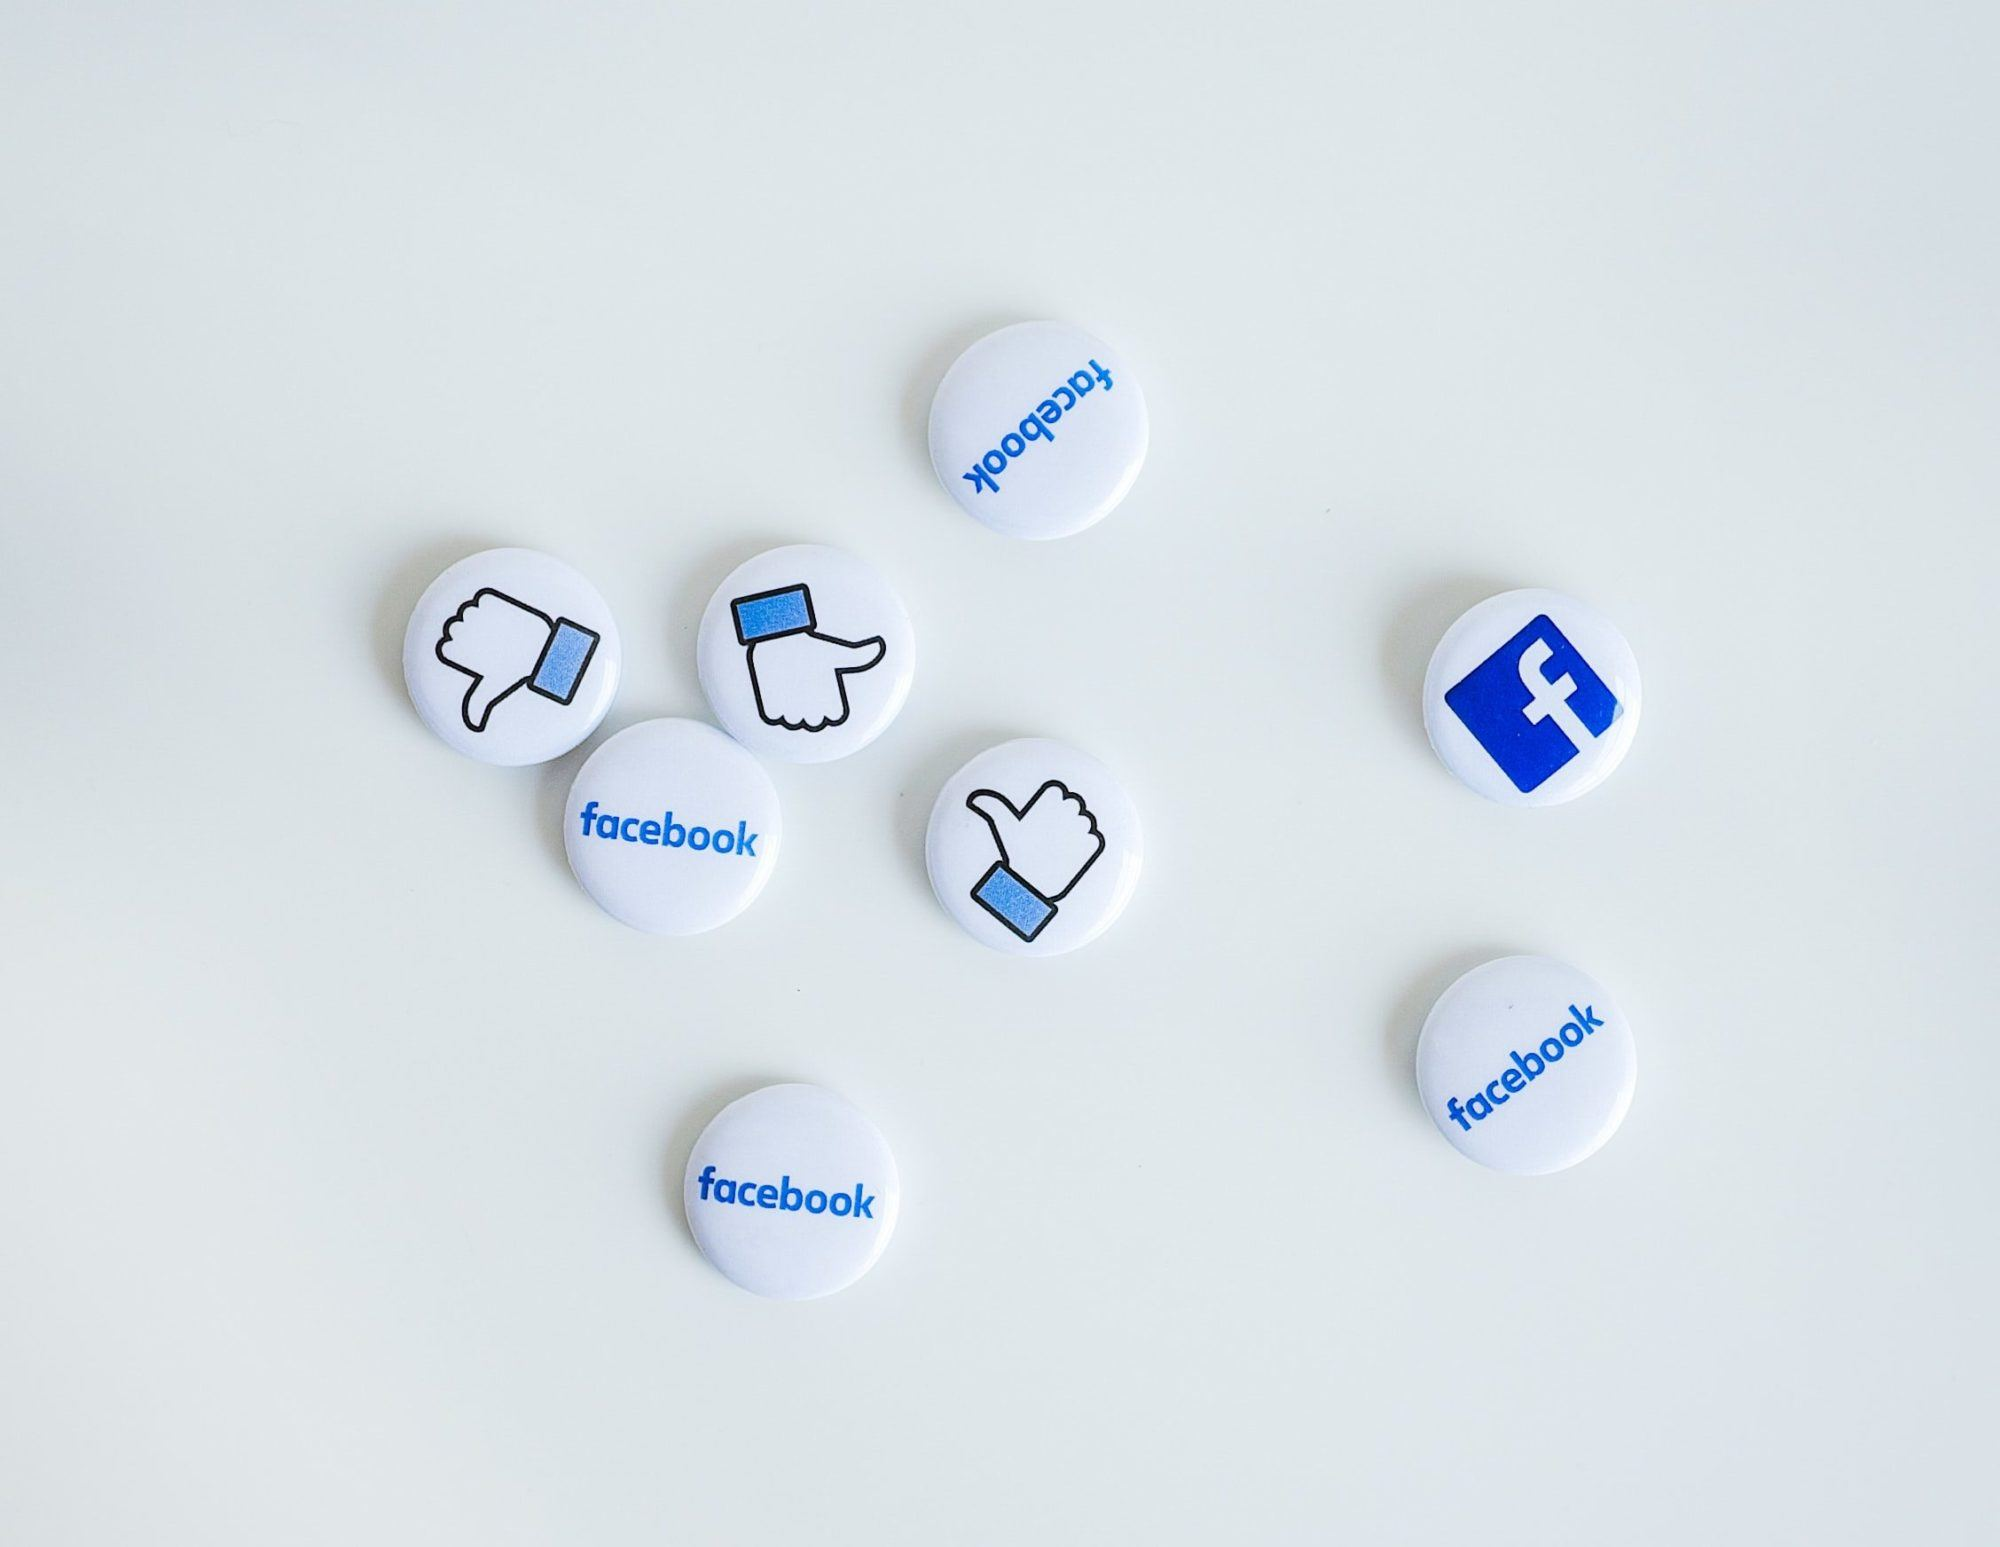 social media icon pins on a white table